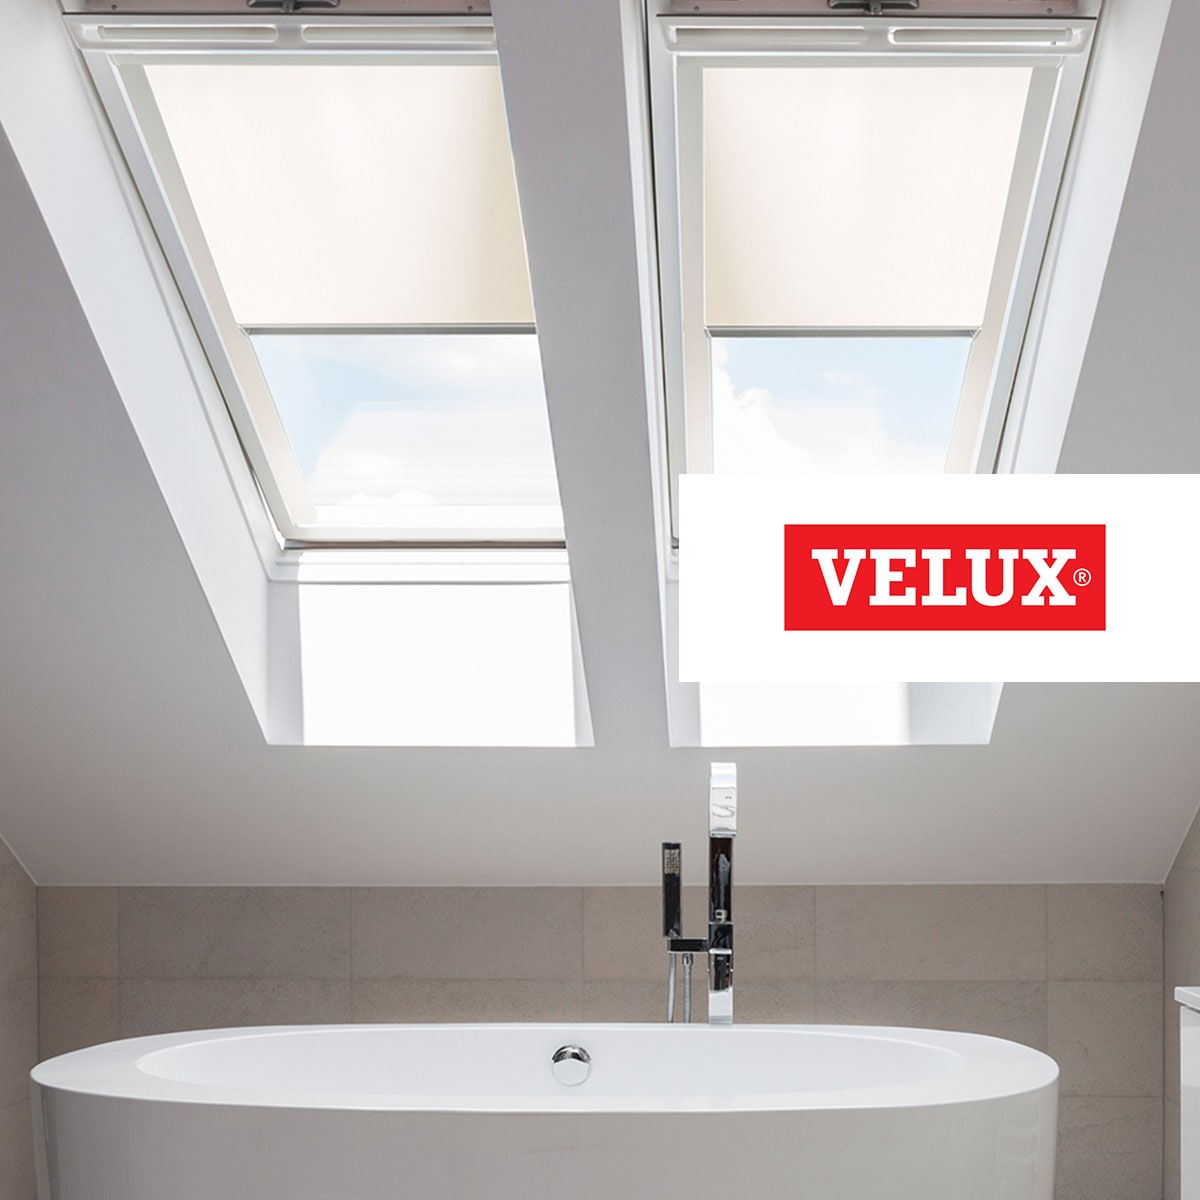 velux dachfenster dachfenster velux panorama with velux. Black Bedroom Furniture Sets. Home Design Ideas